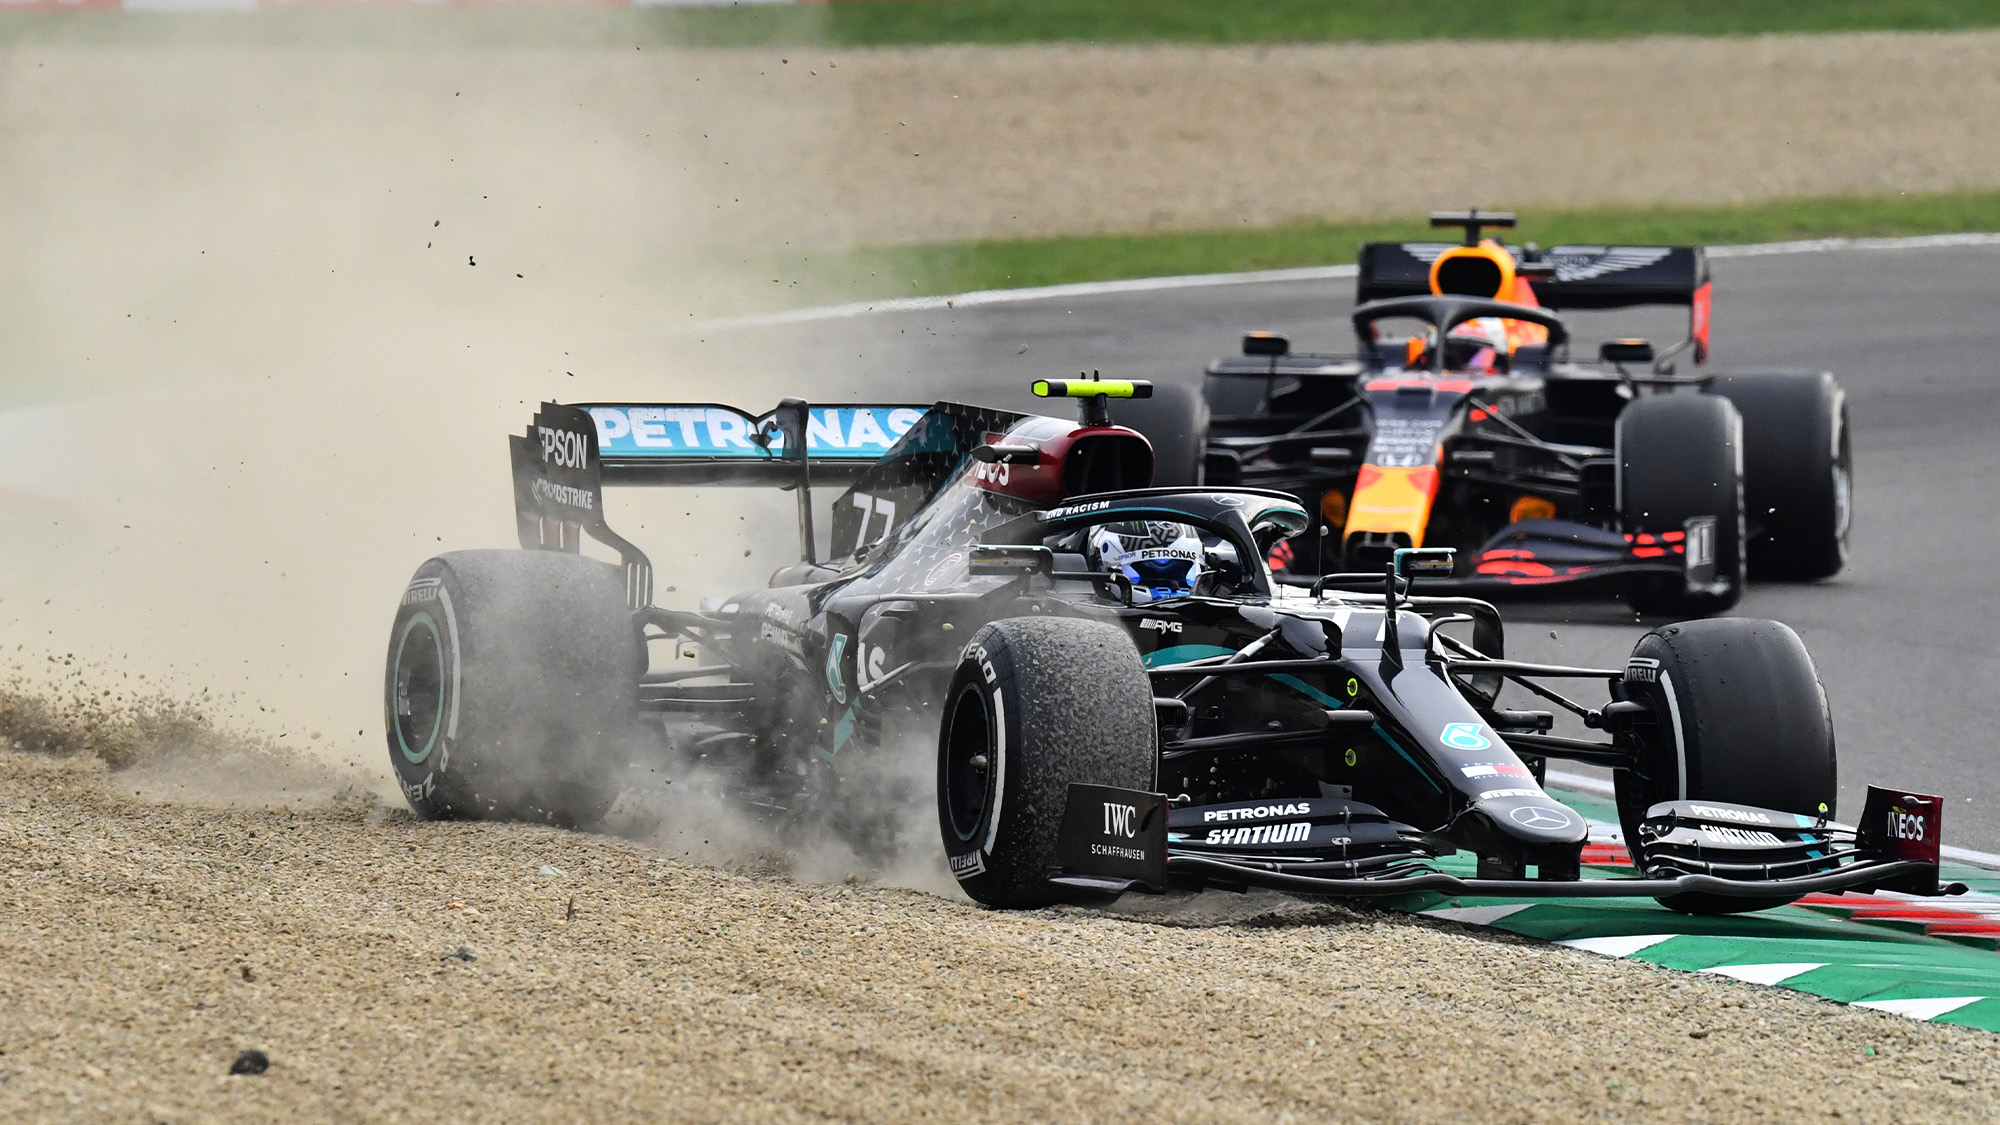 MPH: Bottas looked unstoppable at Imola. Then a piece of broken Ferrari appeared.